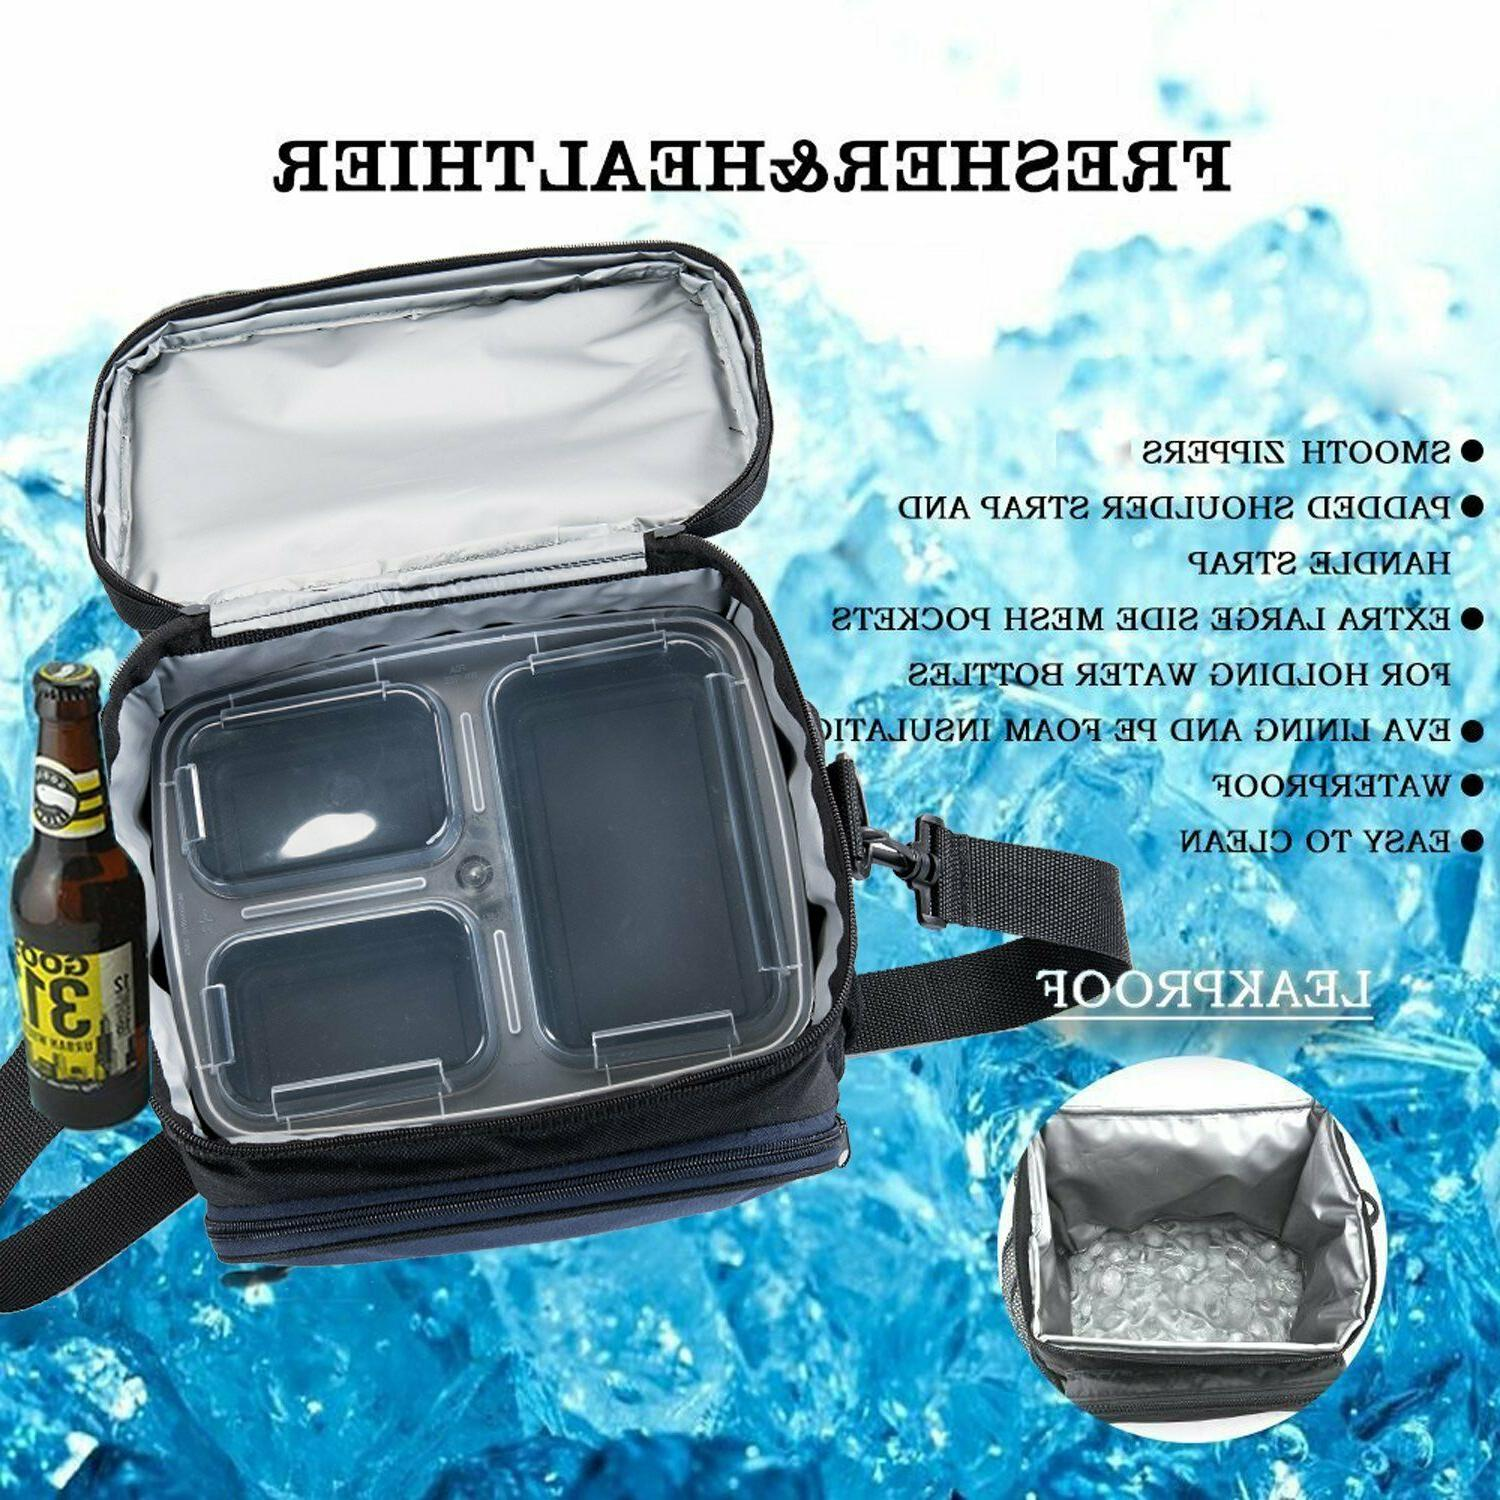 Meal Insulated Lunch, Travel, Picnic 7 Containers